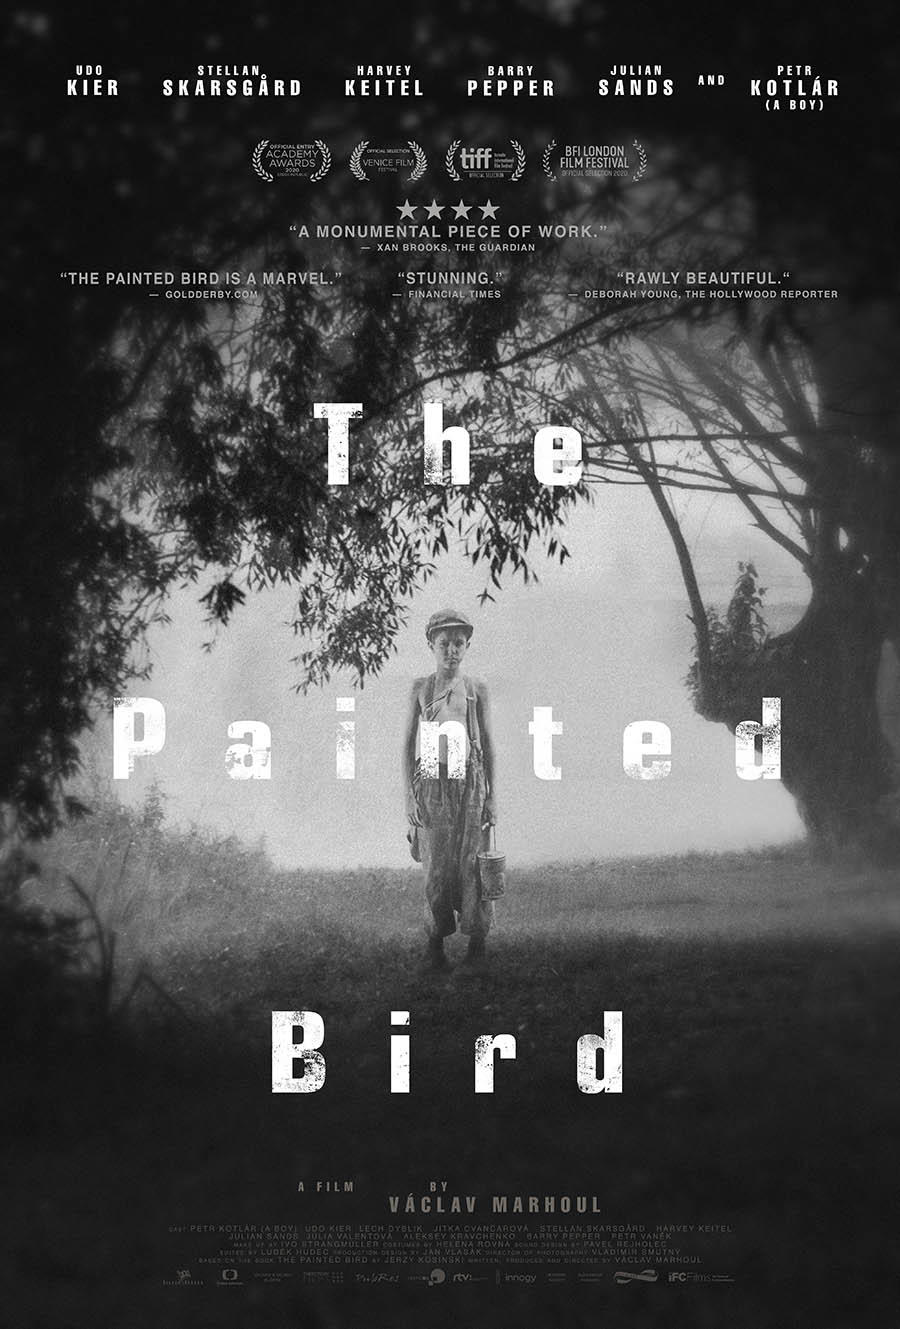 The Painted Bird poster art